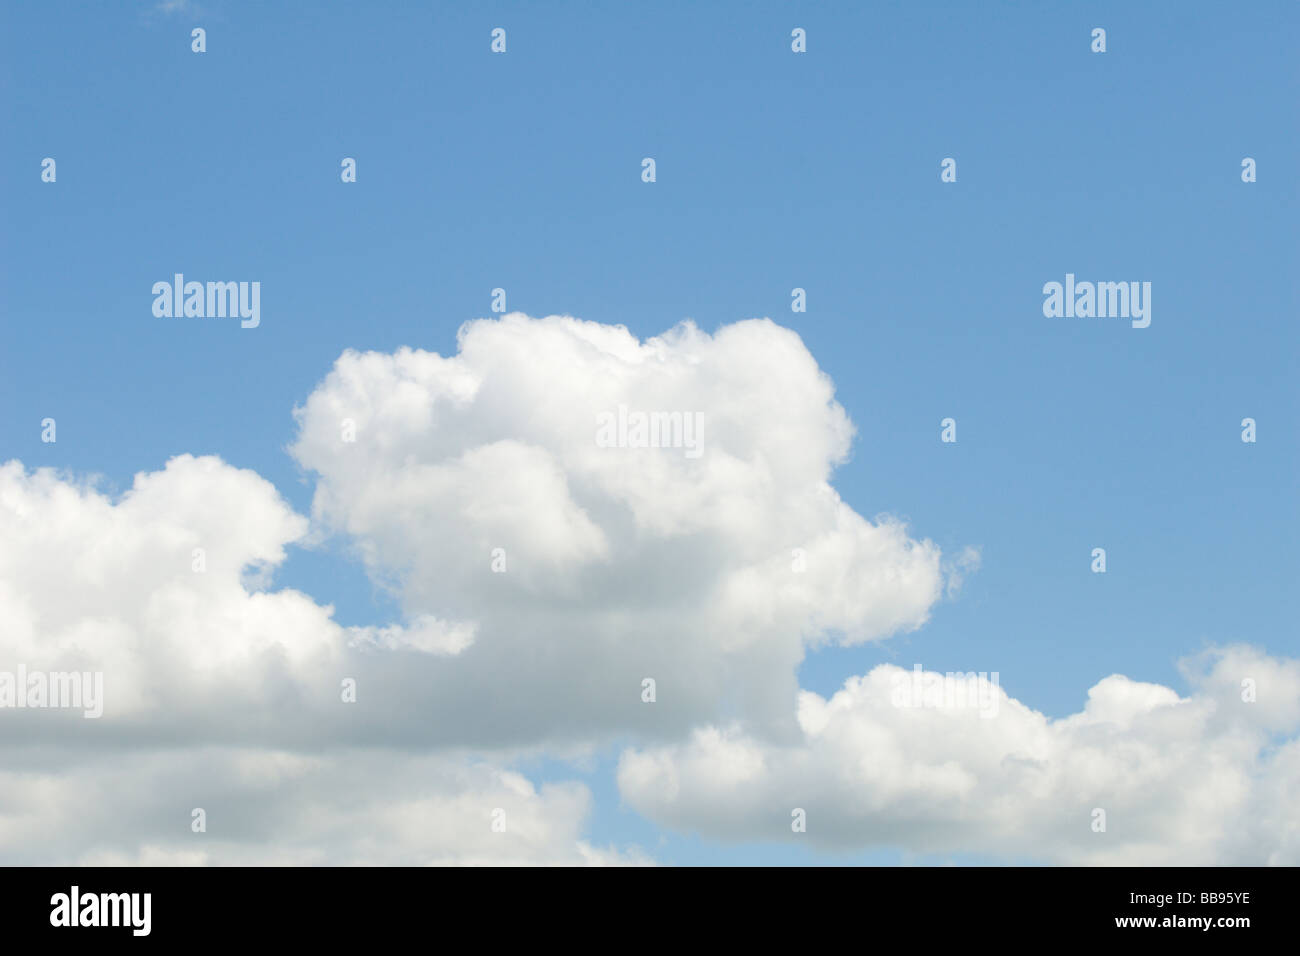 Fluffy clouds on a blue sky - Stock Image